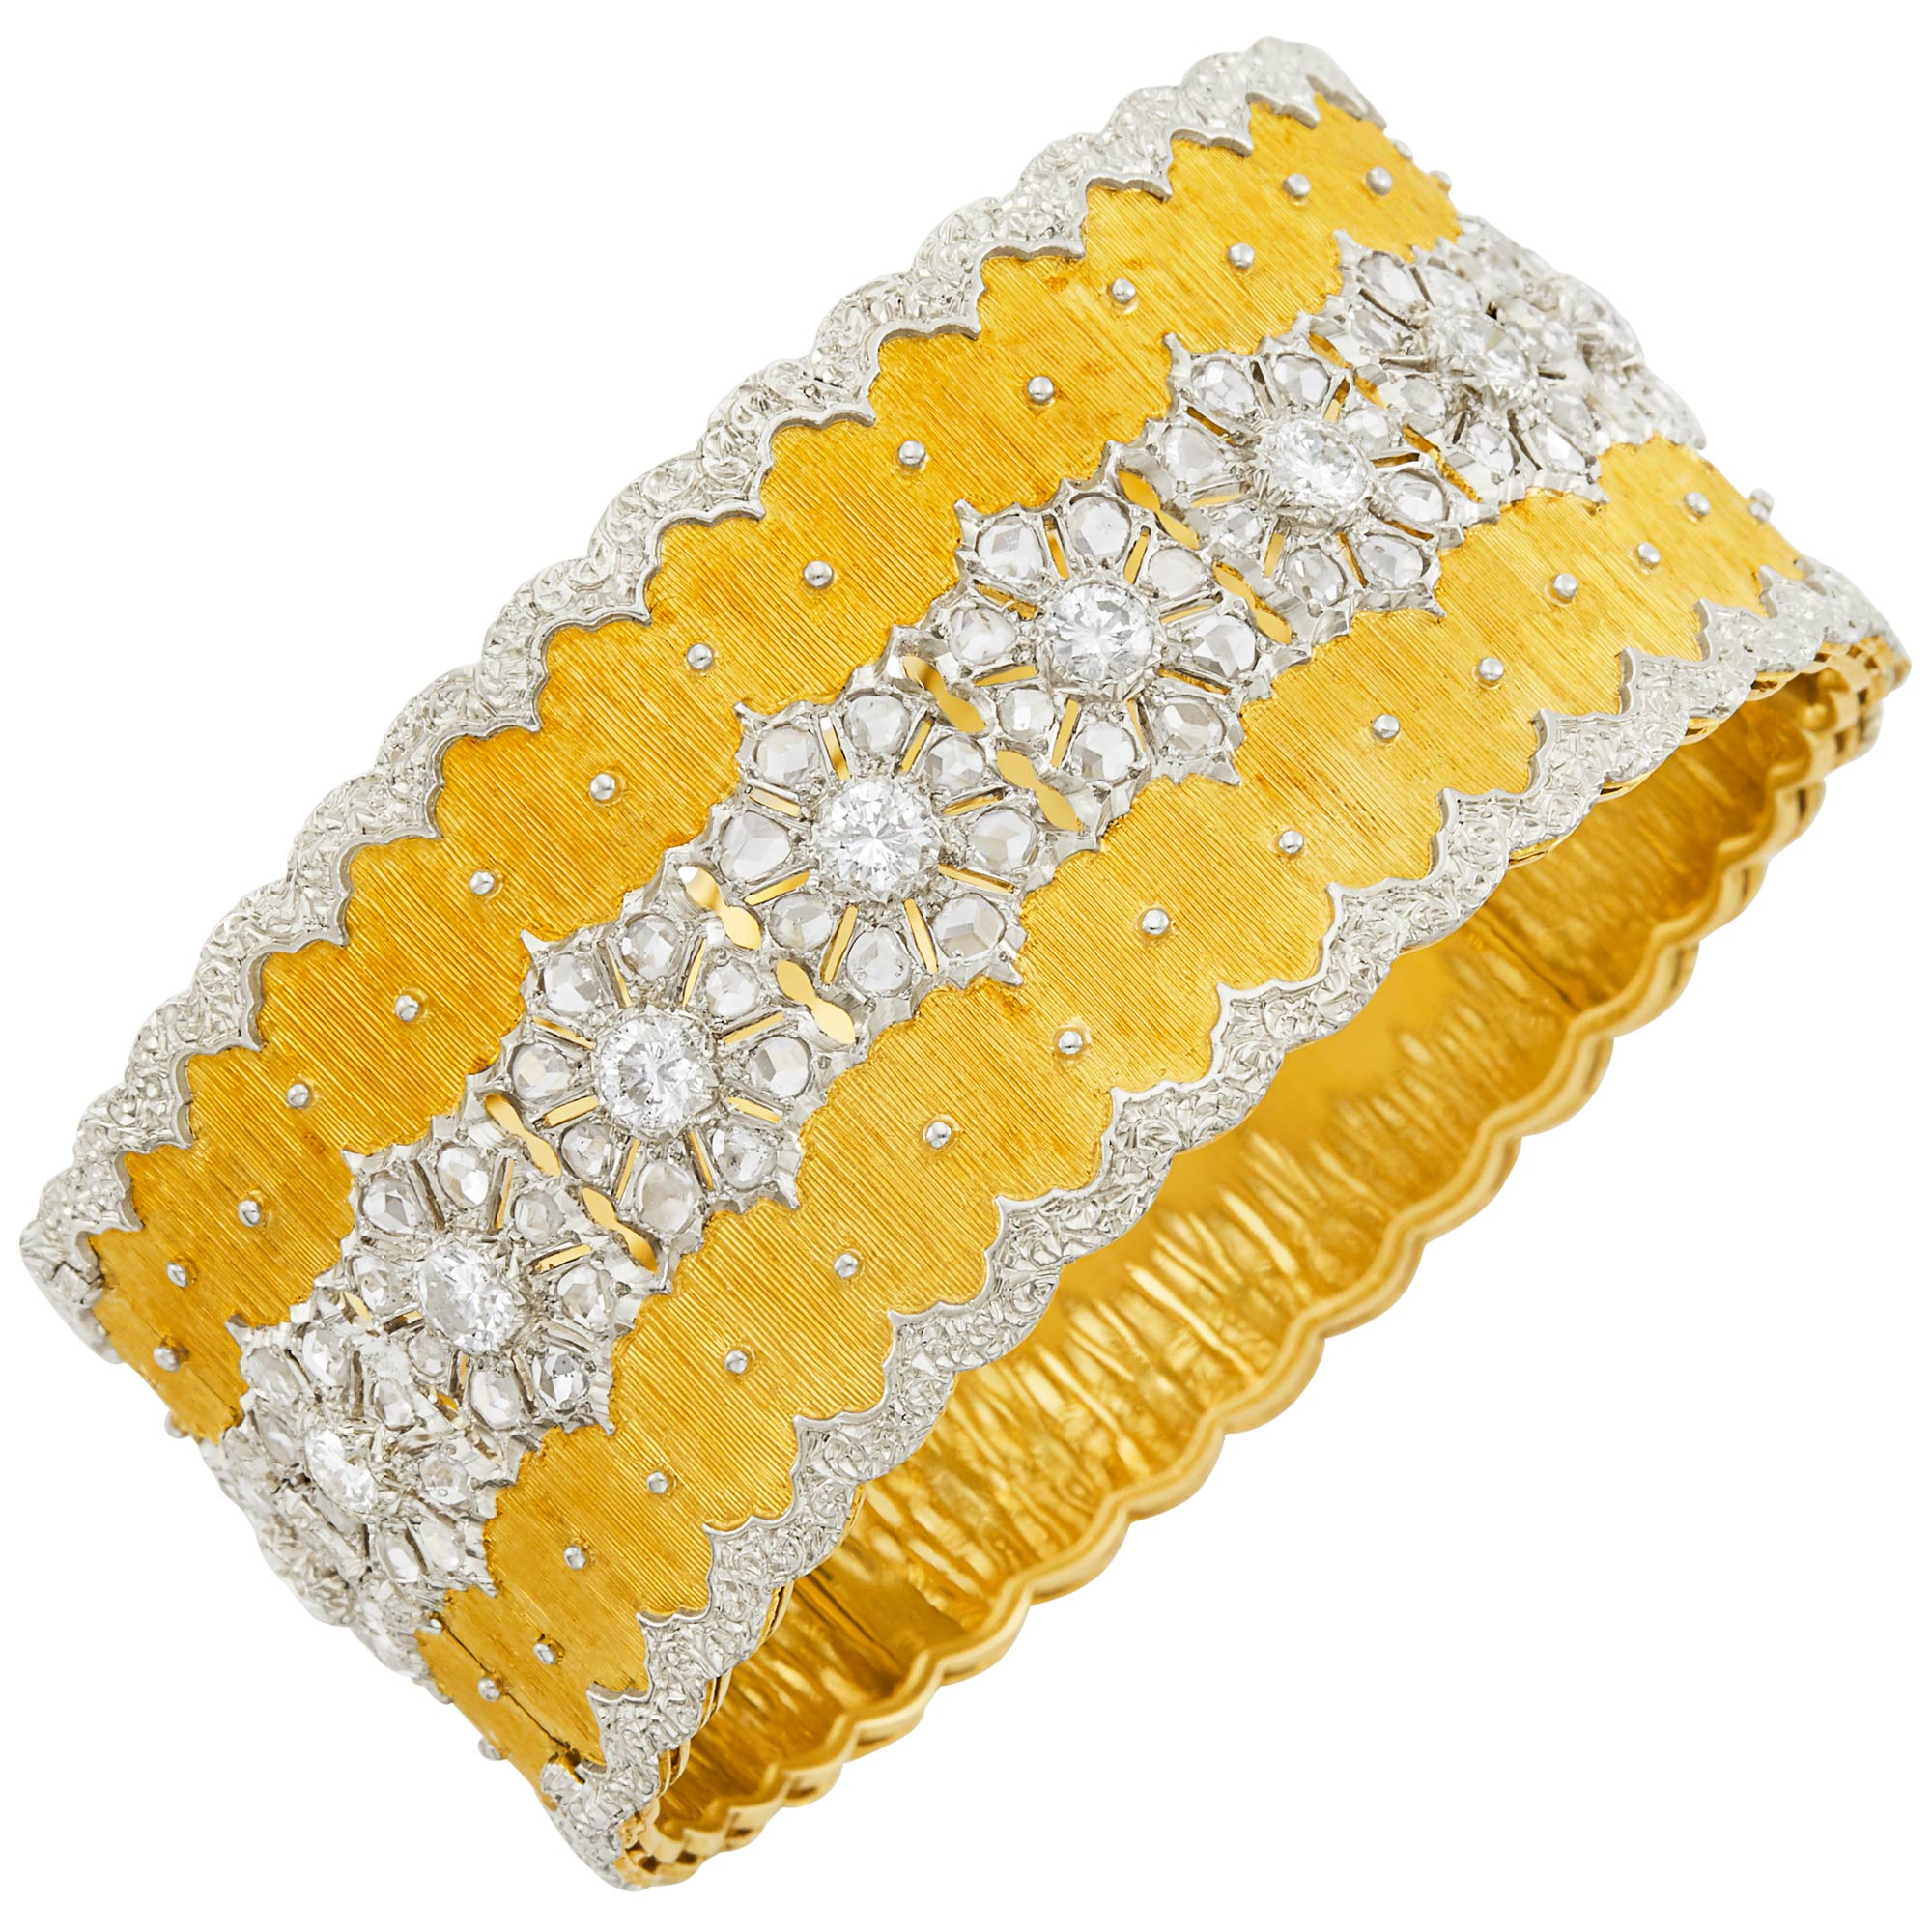 Lot image - Two-Color Gold and Diamond Cuff Bangle Bracelet, Buccellati